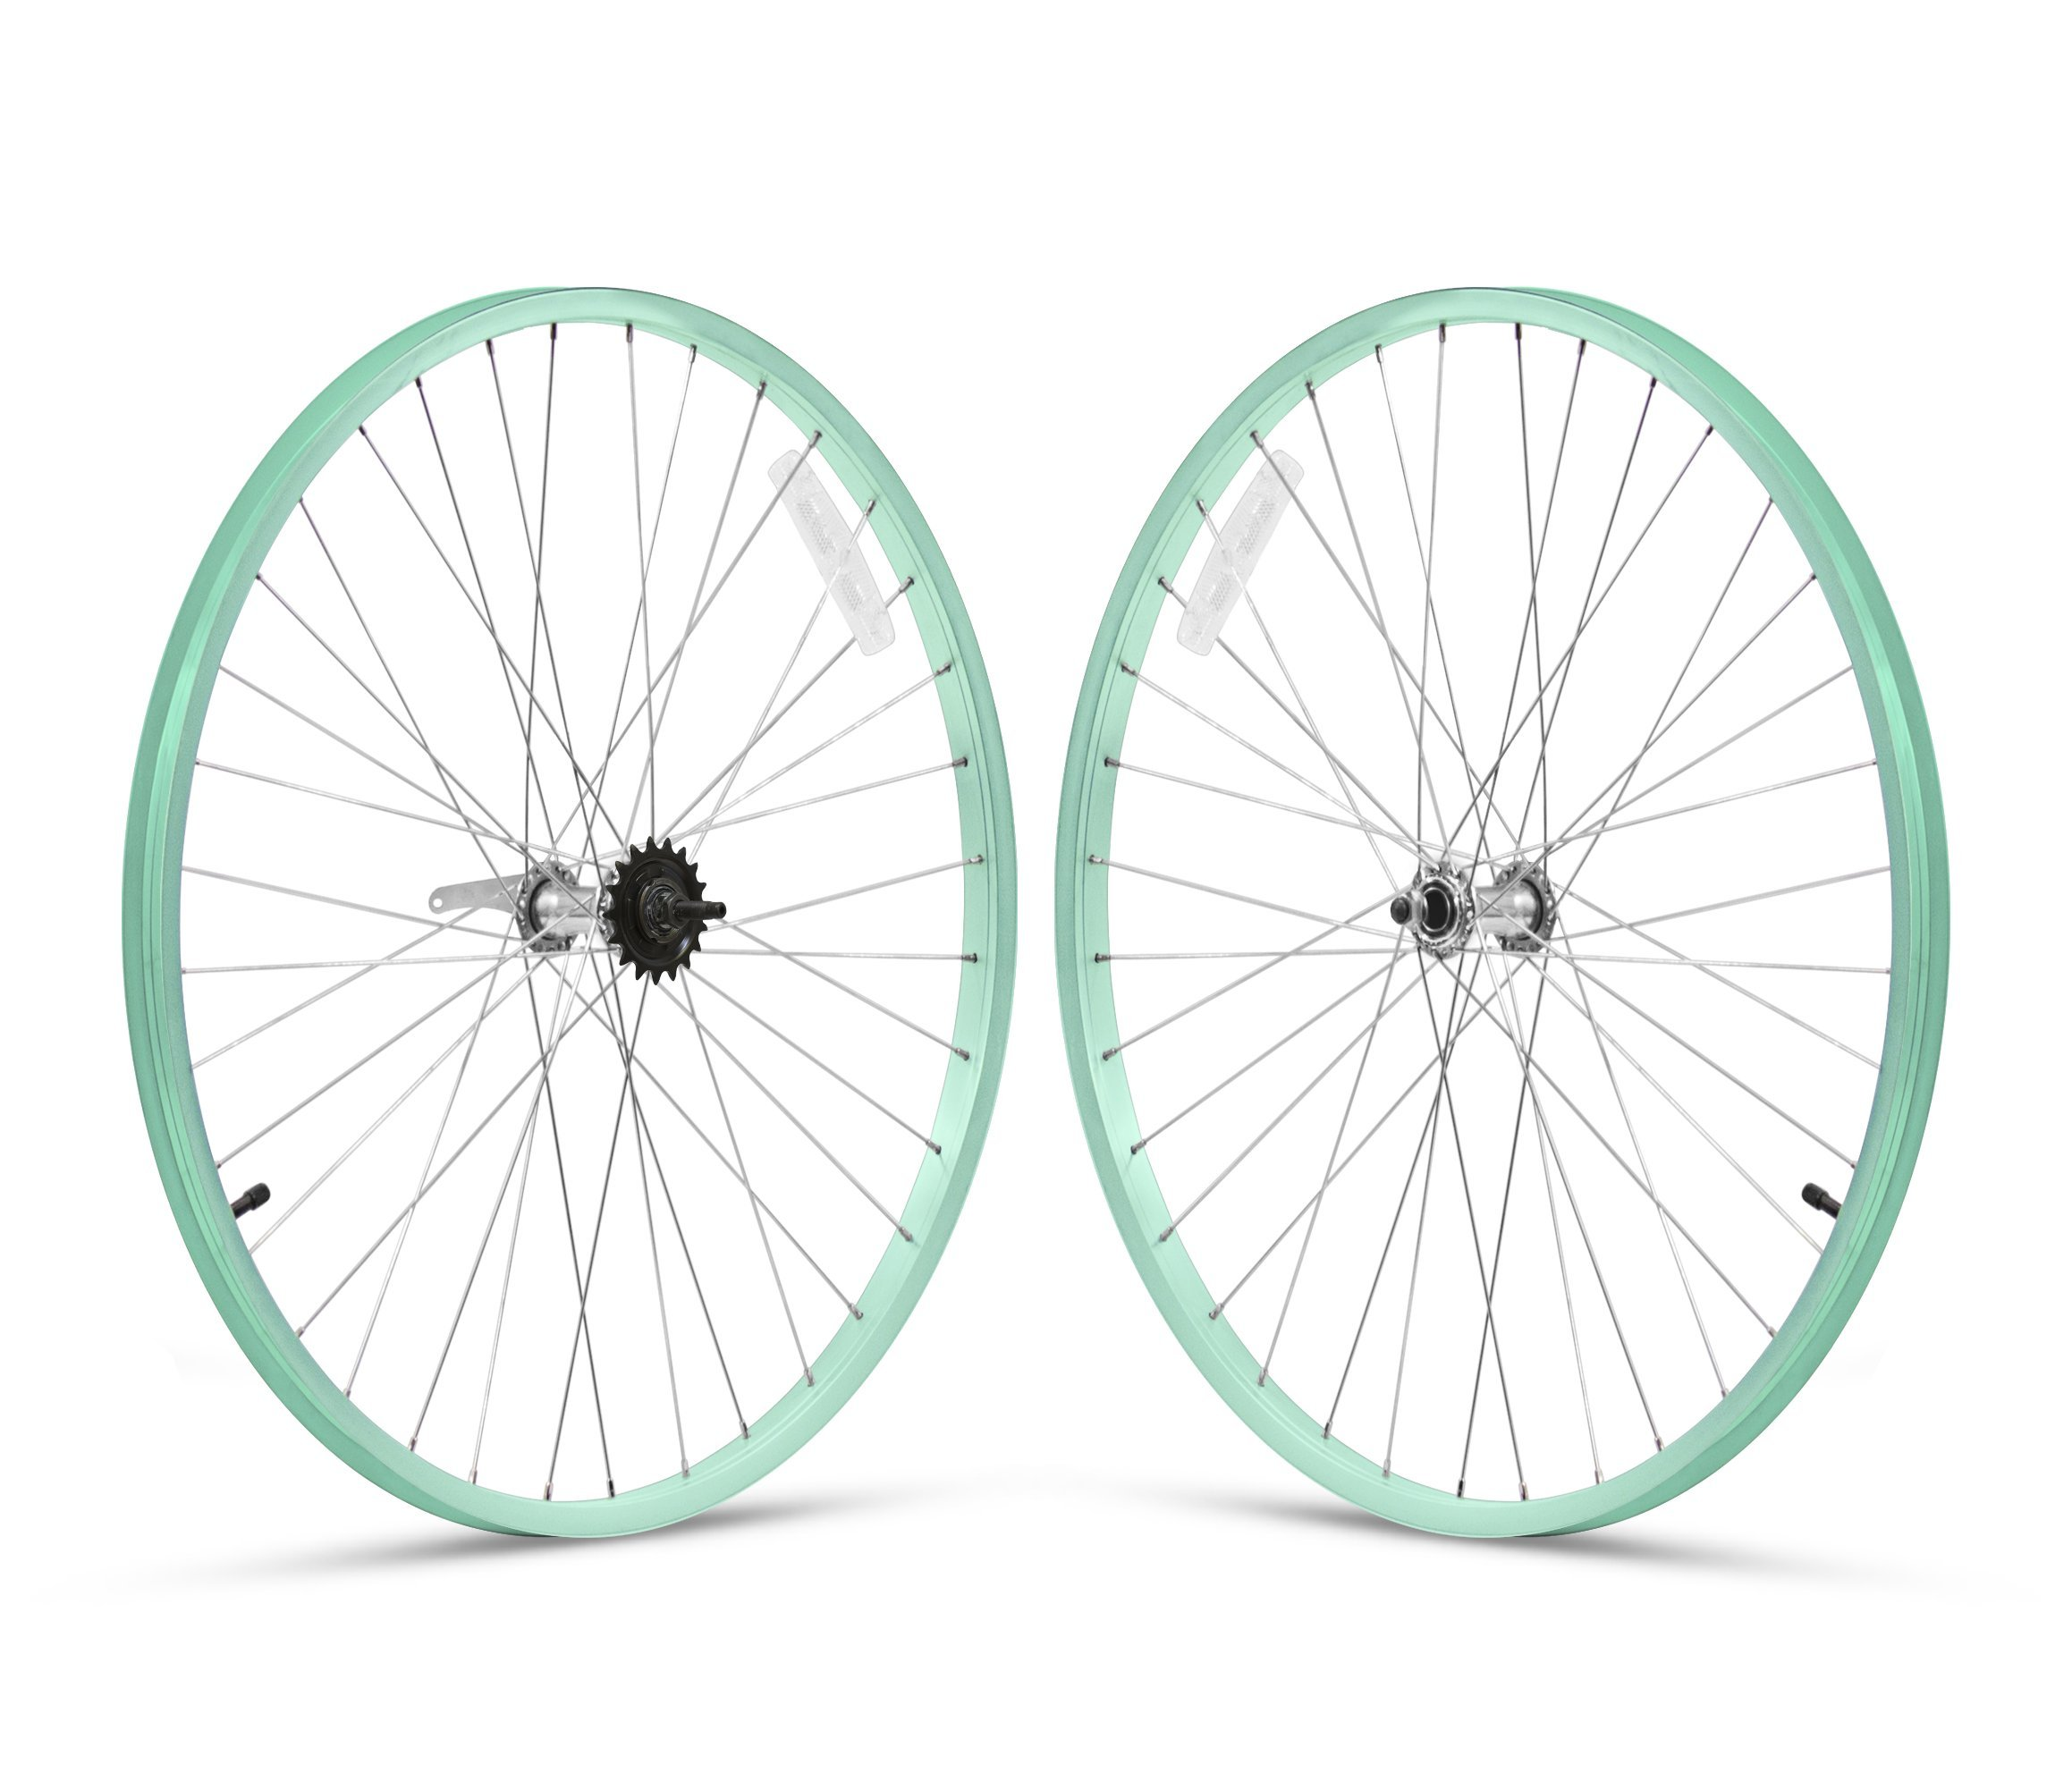 Firmstrong 3-Speed Beach Cruiser Bicycle Wheelset, Front/Rear, Mint Green, 26'' by Firmstrong